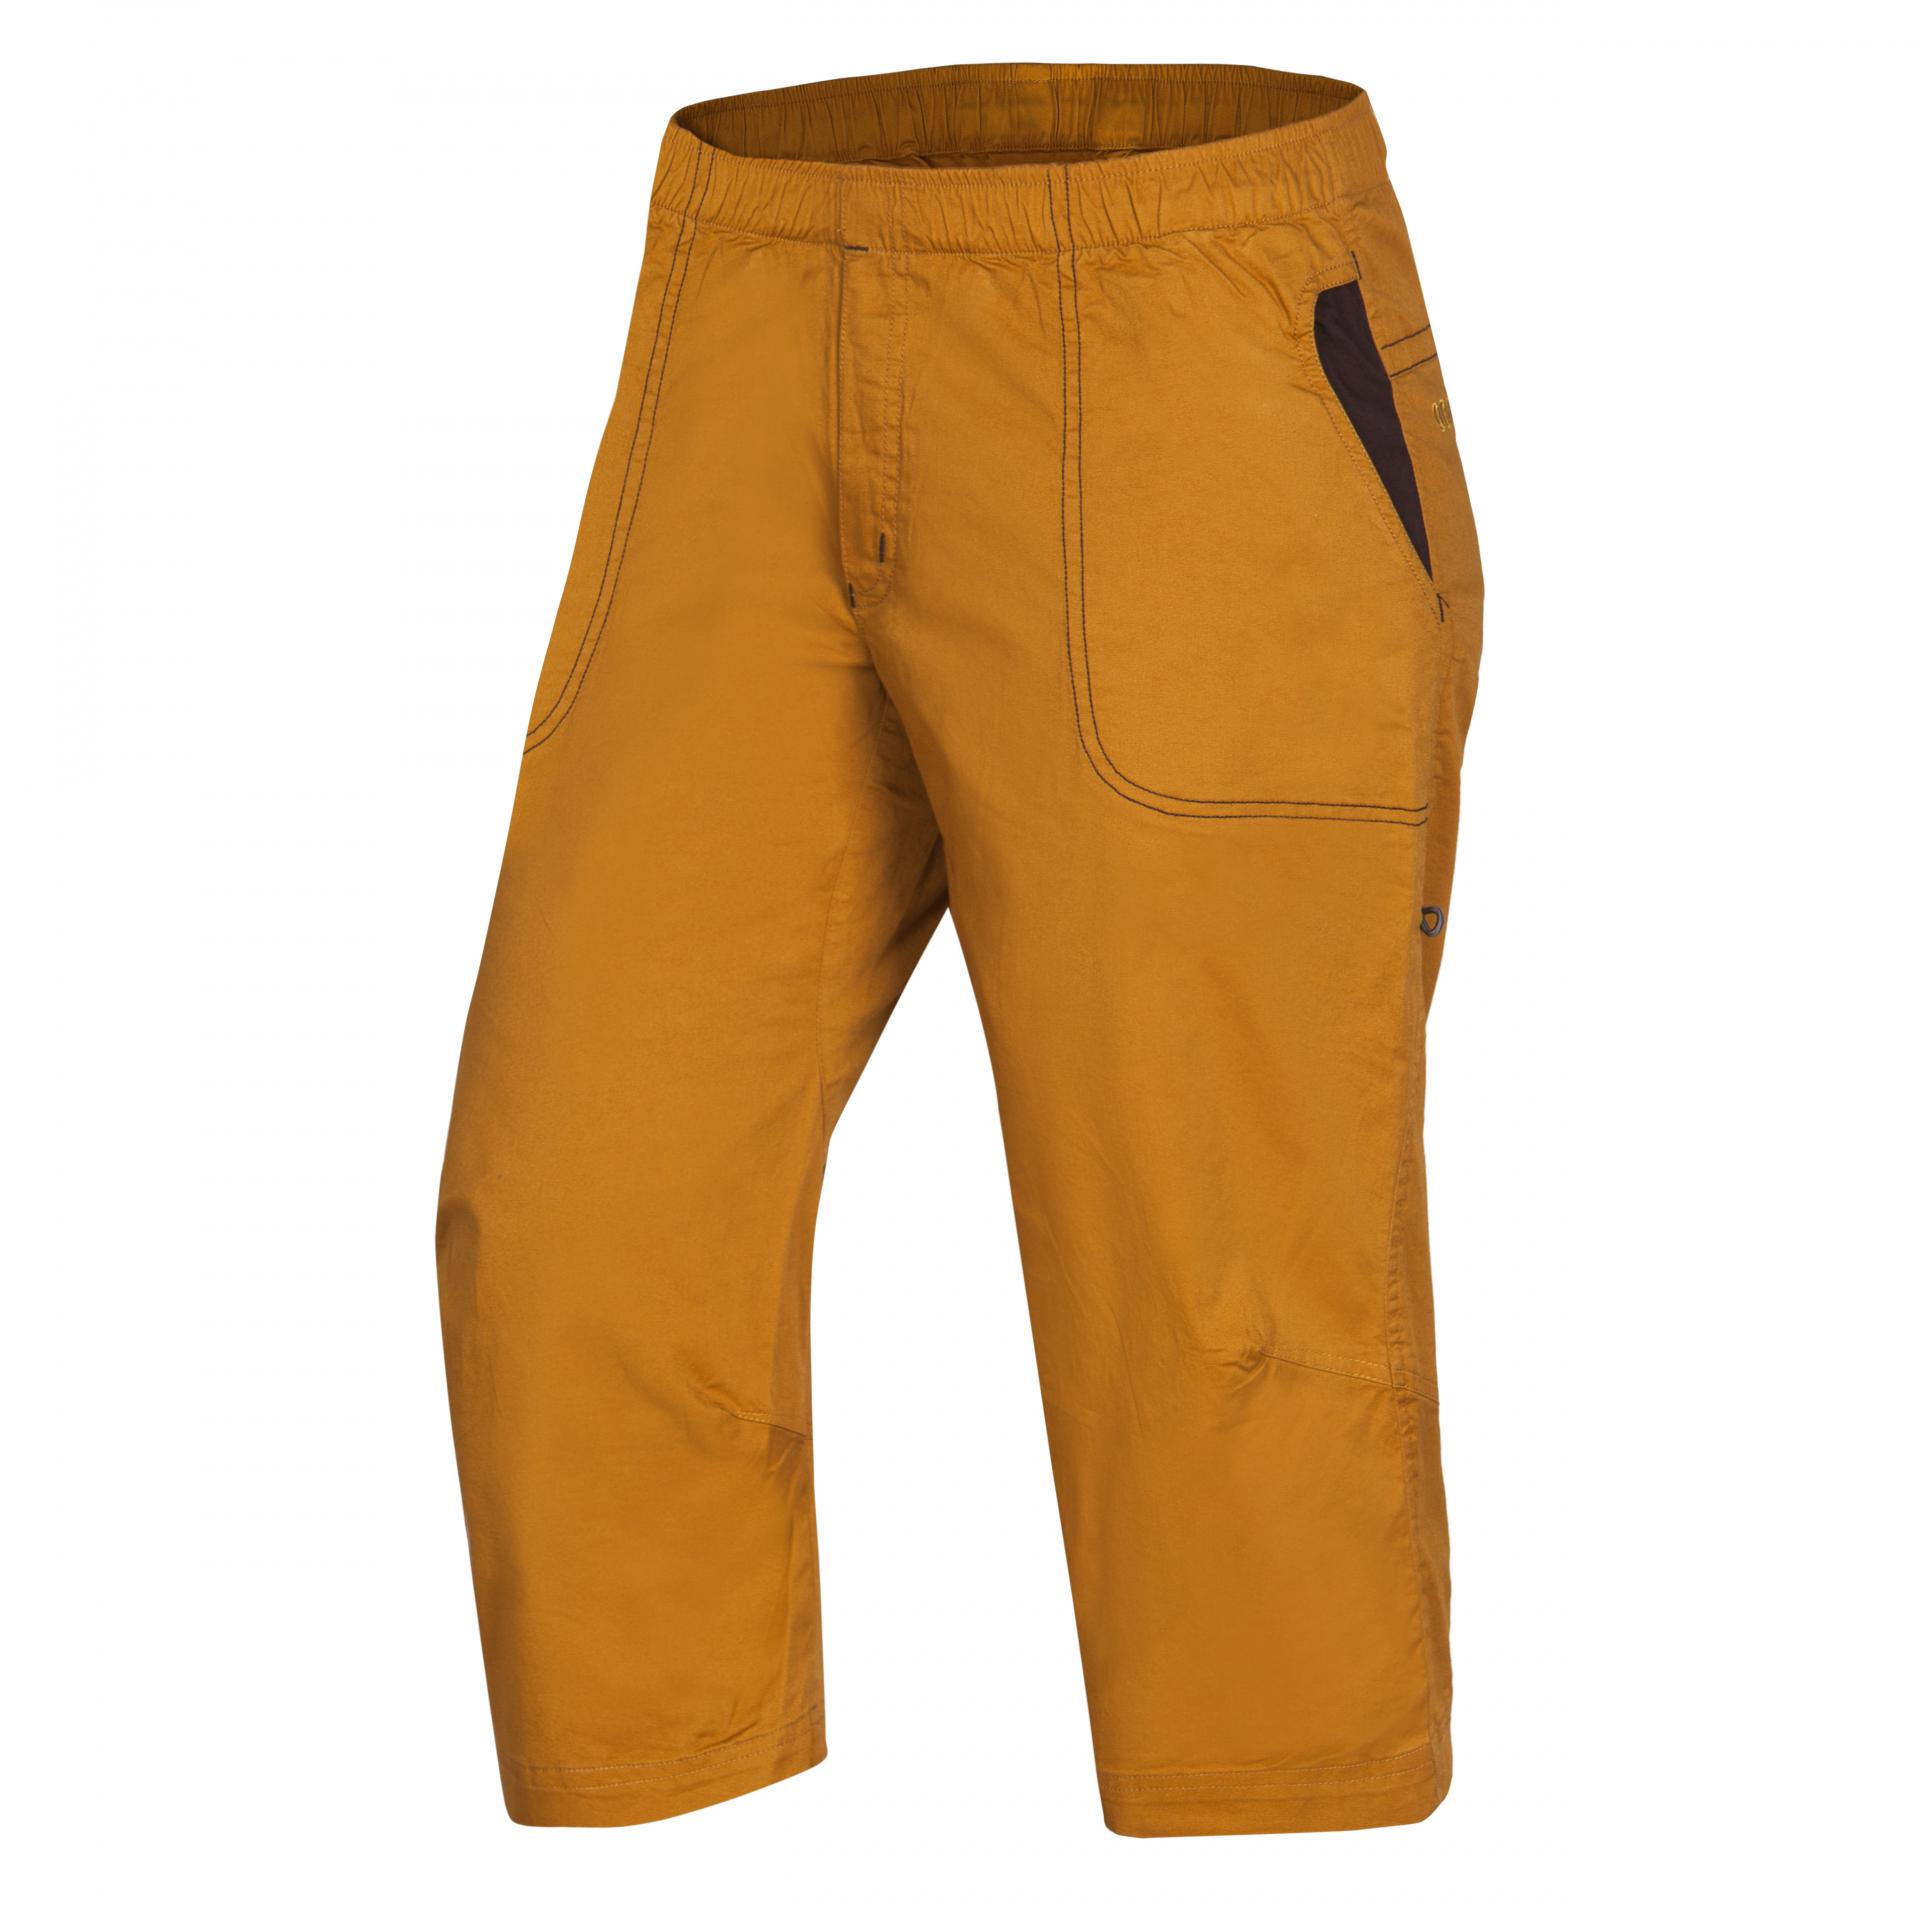 Ocun Jaws 3/4 pants NEW